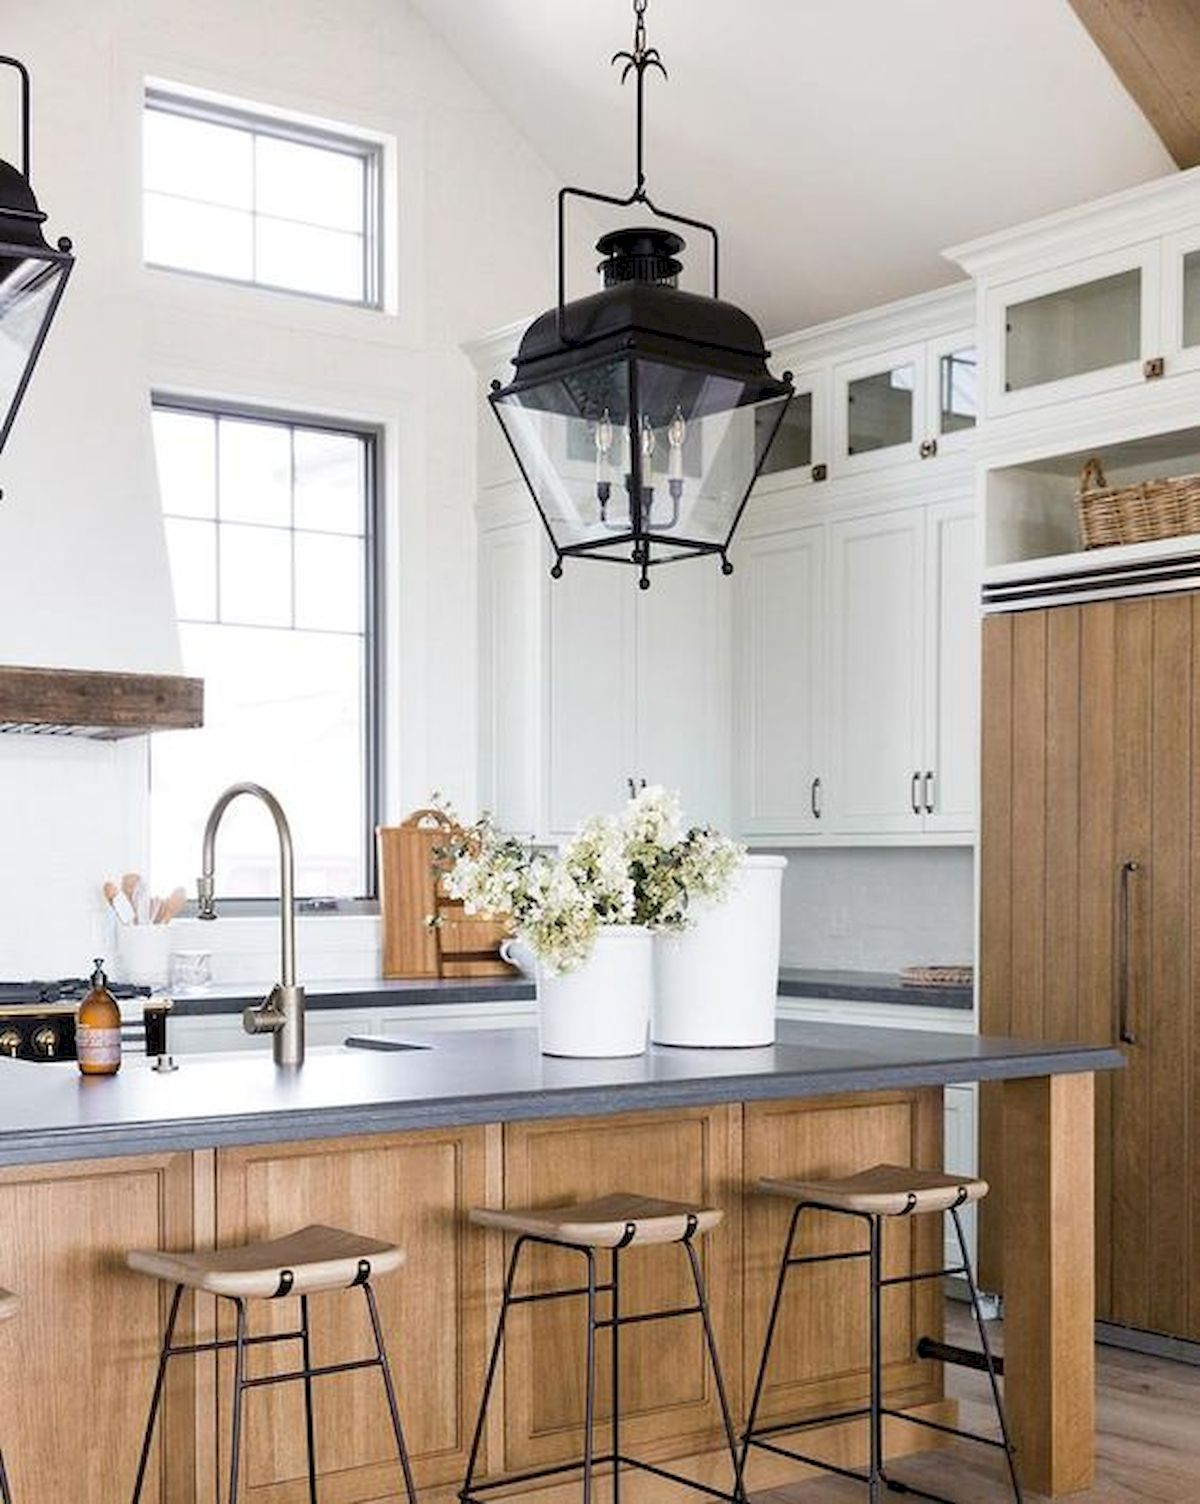 60 Great Farmhouse Kitchen Countertops Design Ideas And ... on Counter Top Decor  id=90241